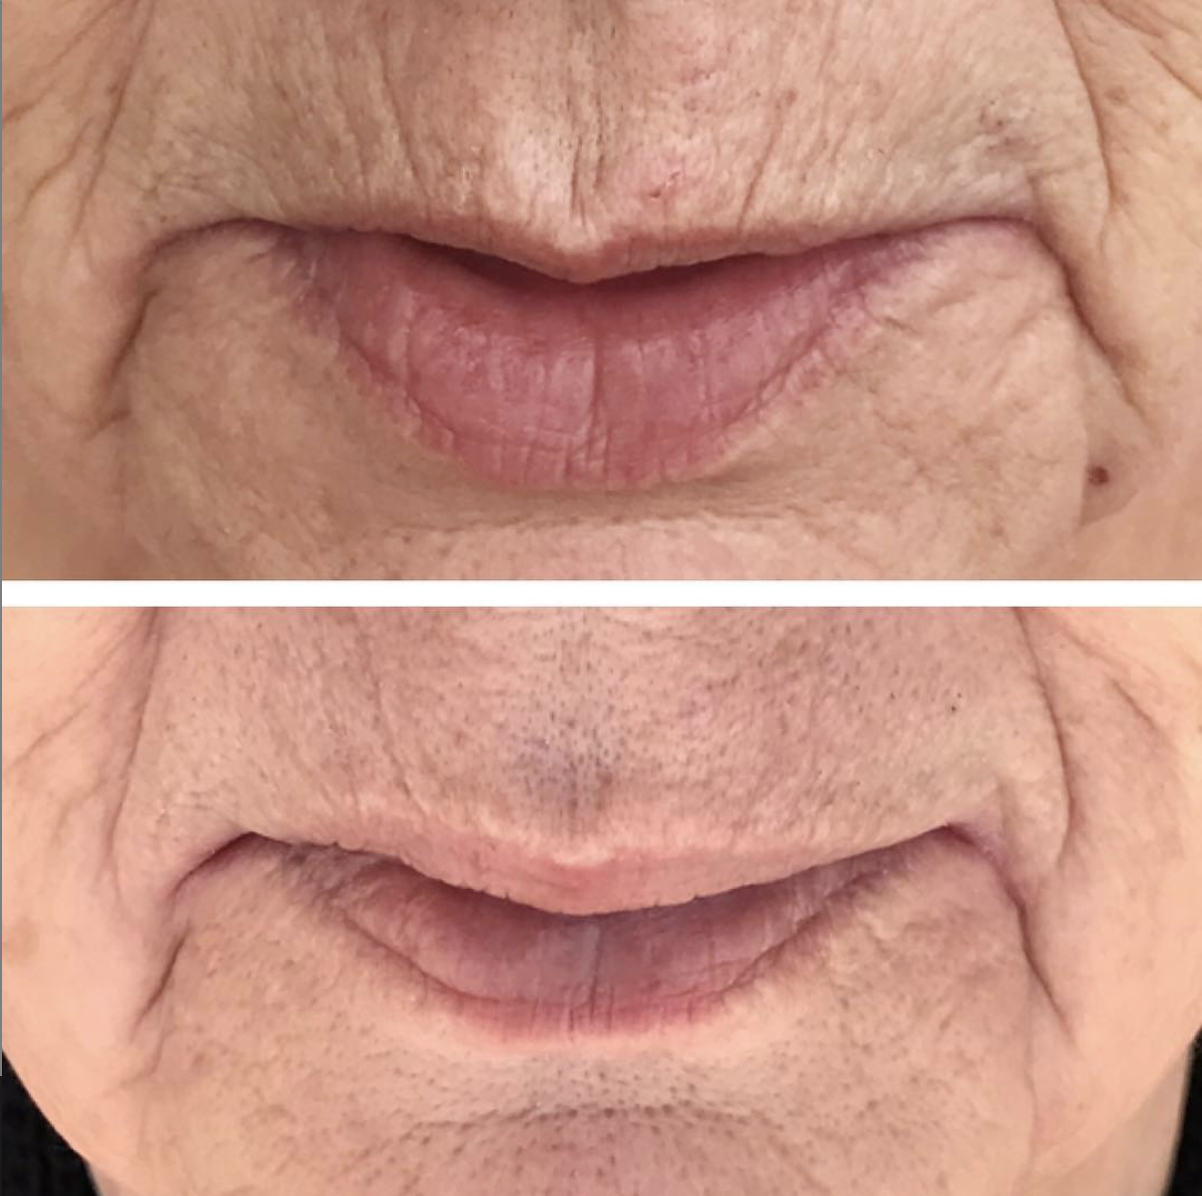 One treatment, 2.5 weeks healed. Reduction of fine lines around the mouth. Deeper wrinkles are shorter and more shallow. Client will continue to see improvements until about 2-3 months post-treatment.